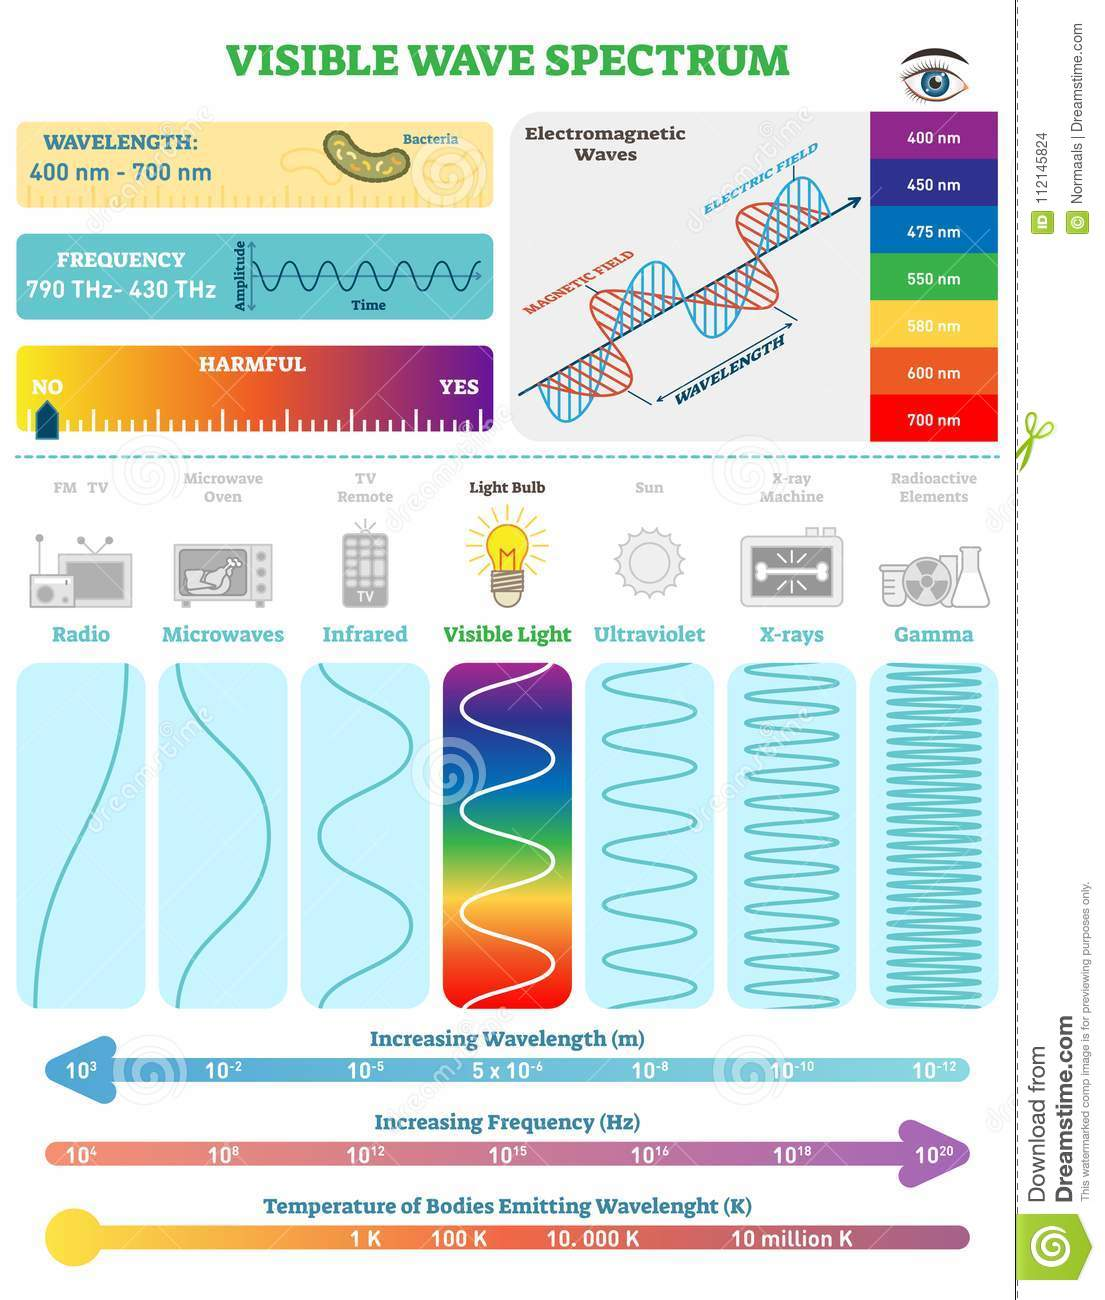 Electromagnetic Waves: Visible Wave Spectrum. Vector illustration diagram with wavelength, frequency and wave structure